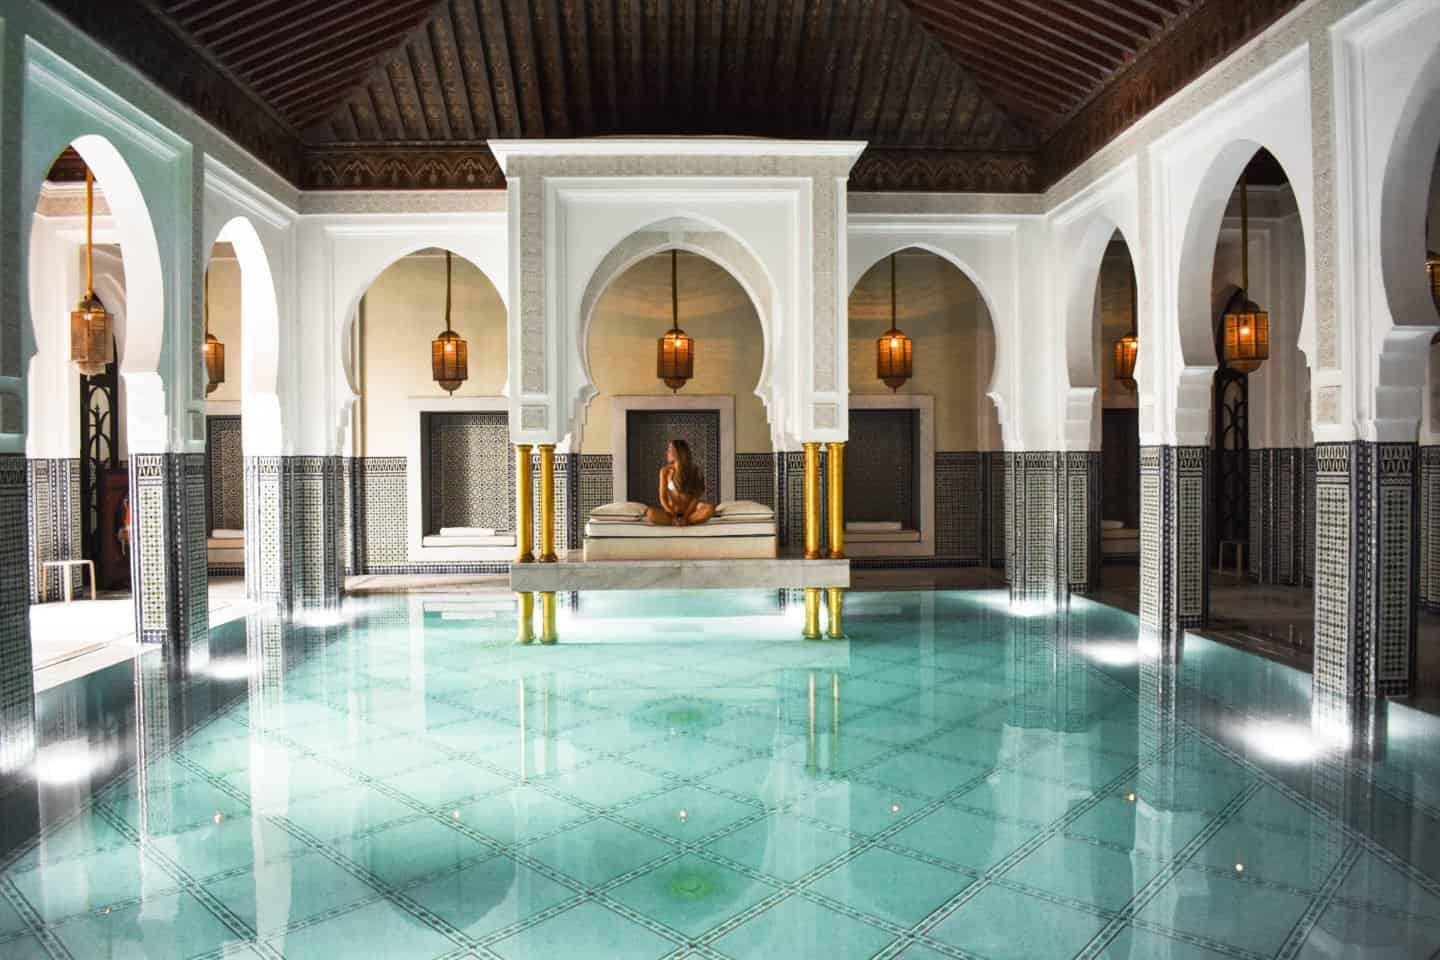 the indoor swimming pool at La Mamounia